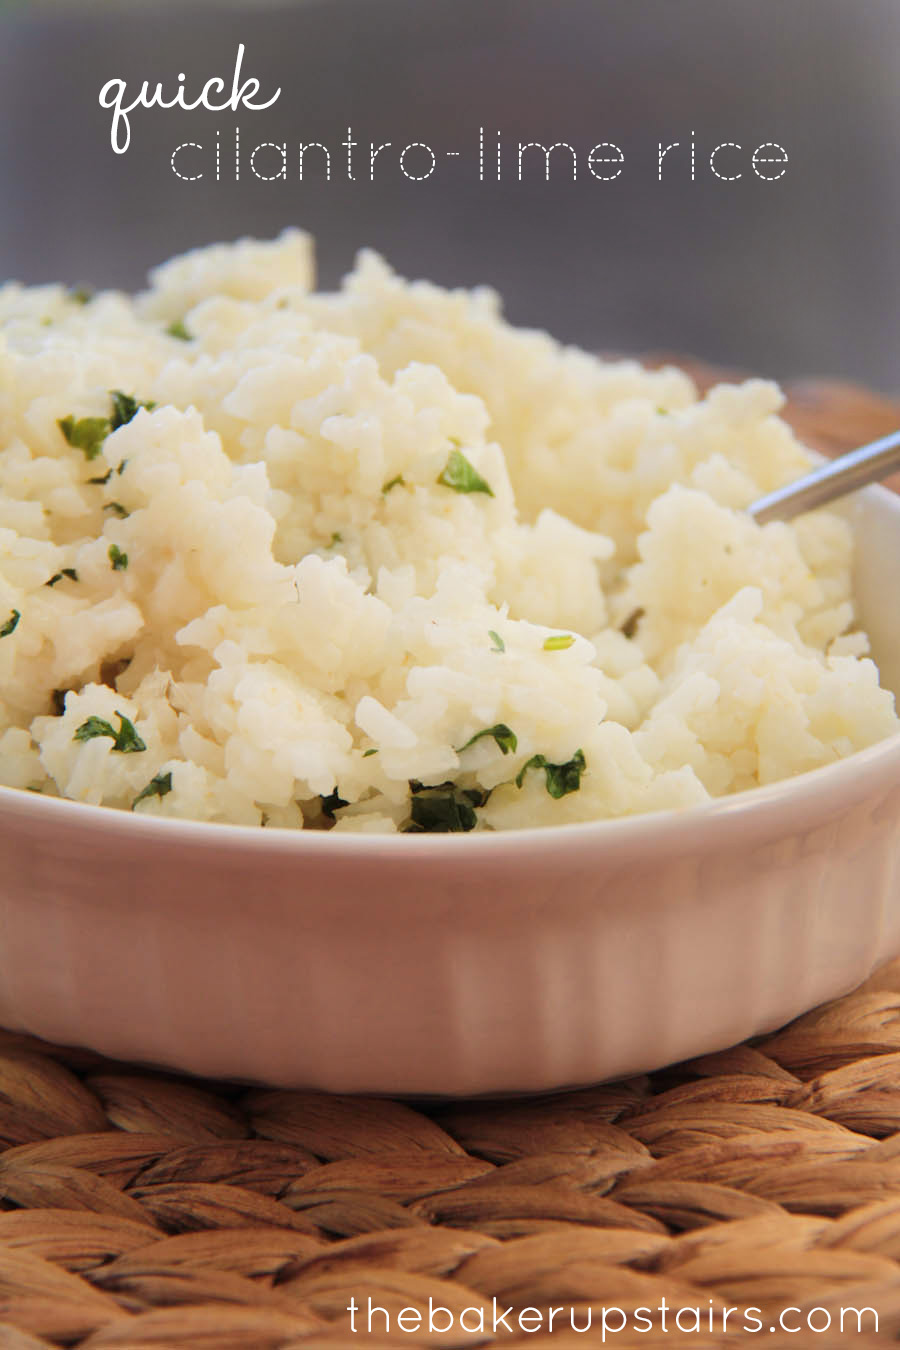 the baker upstairs: quick cilantro-lime rice